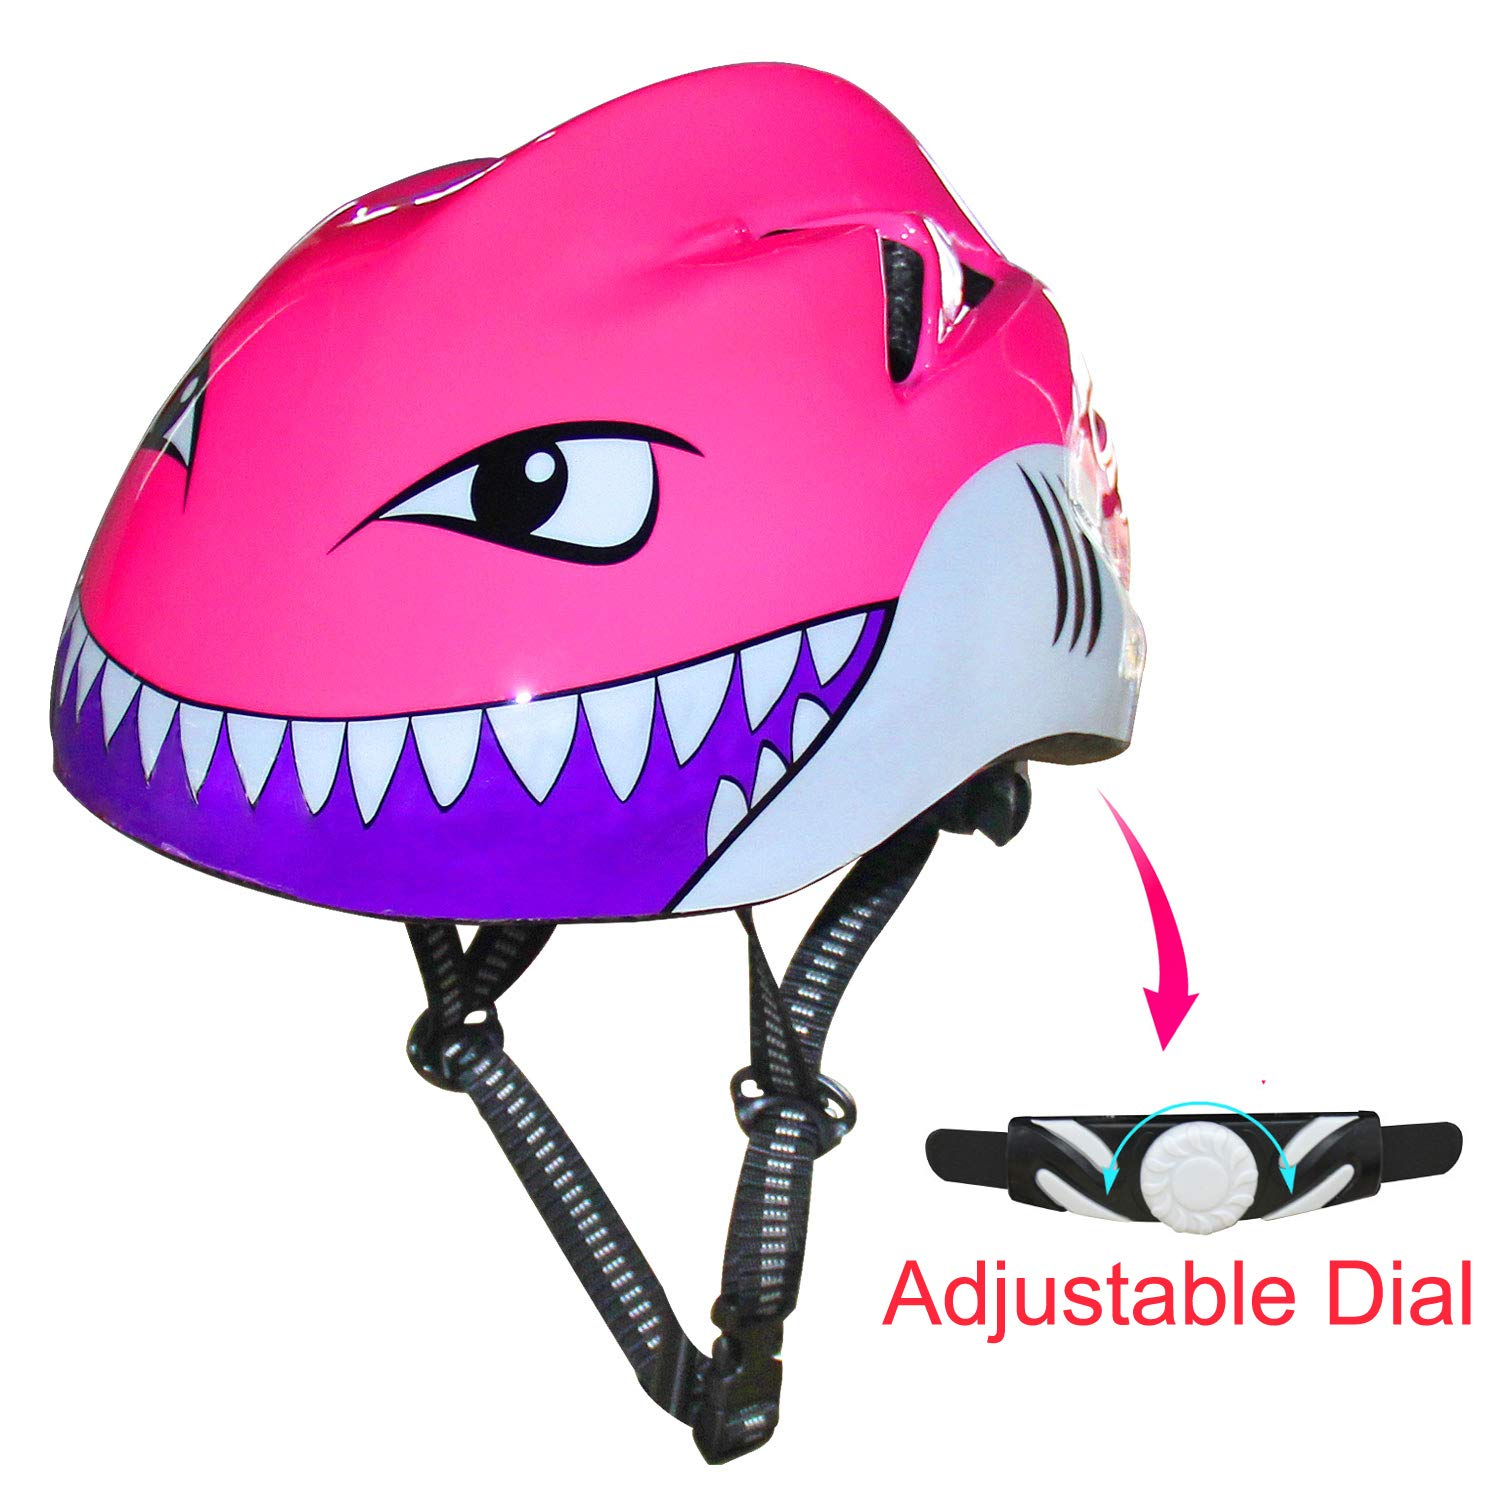 67i Kids Bike Helmet CPSC Certified Adjustable 3D Shark Bicycle Helmets for Toddler and Youth Ages 3-12 Multi-Sport Helmet for Cycling//Skateboard//Scooter//Skating-2 Sizes